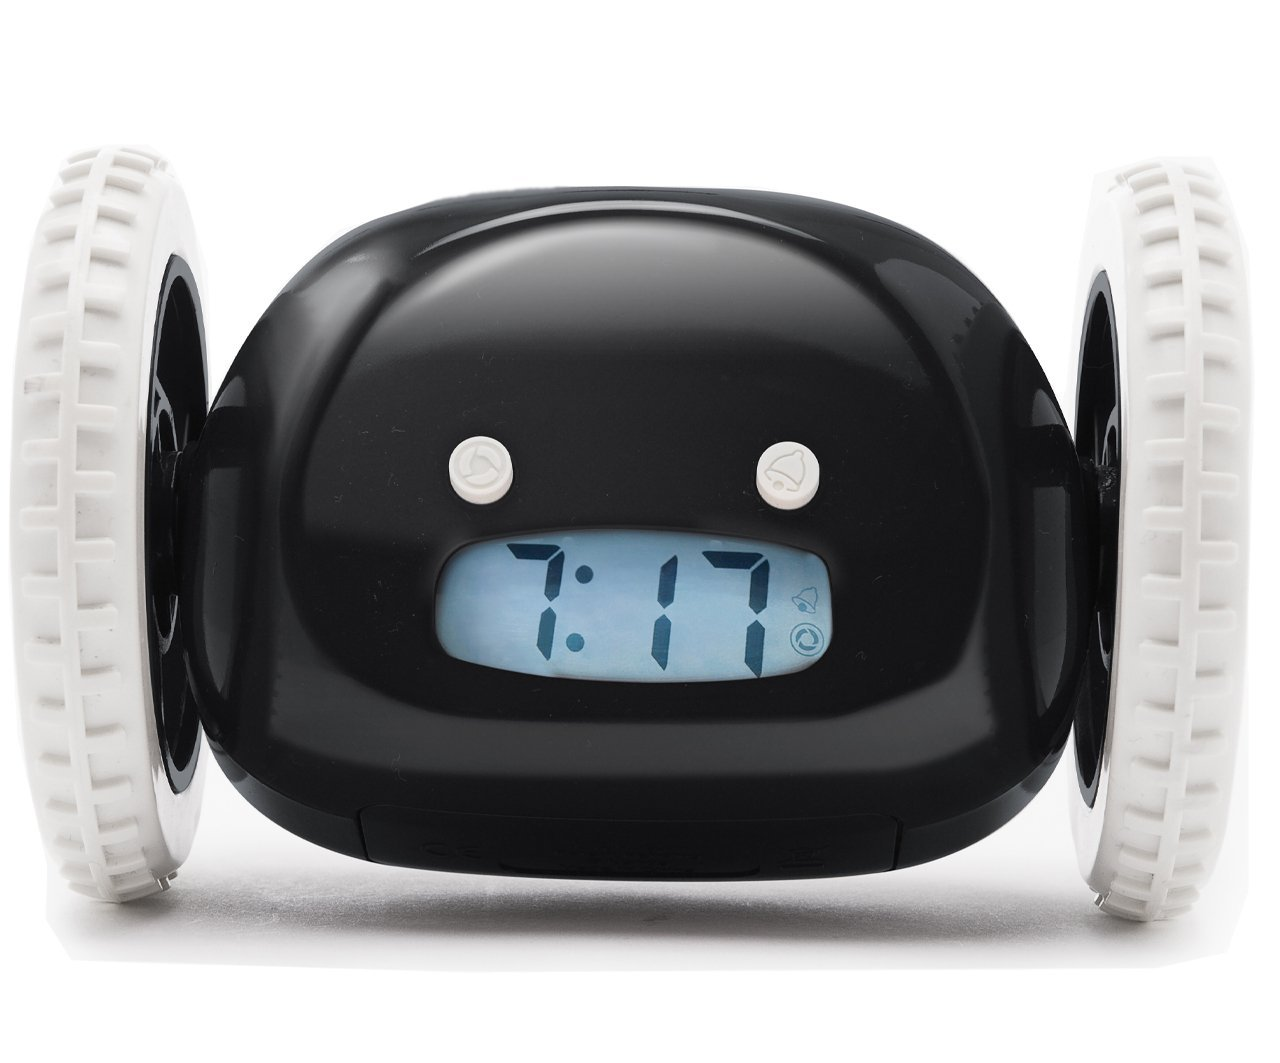 Clocky, the Original Runaway Alarm Clock on Wheels (Loud for Heavy Sleepers, Fun Rolling Moving Clock), Black